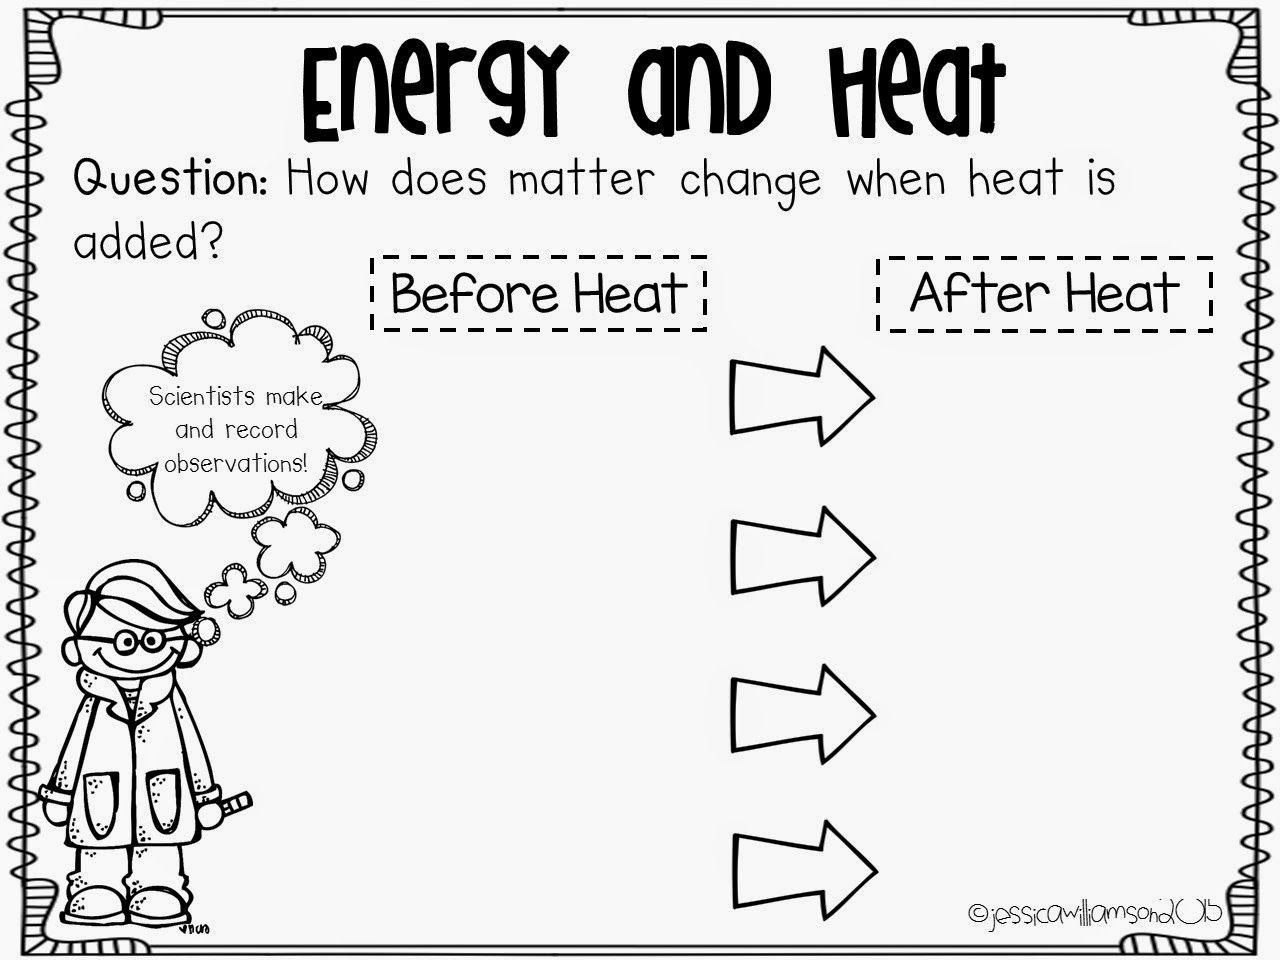 S Teacherspayteachers Product All About Heat